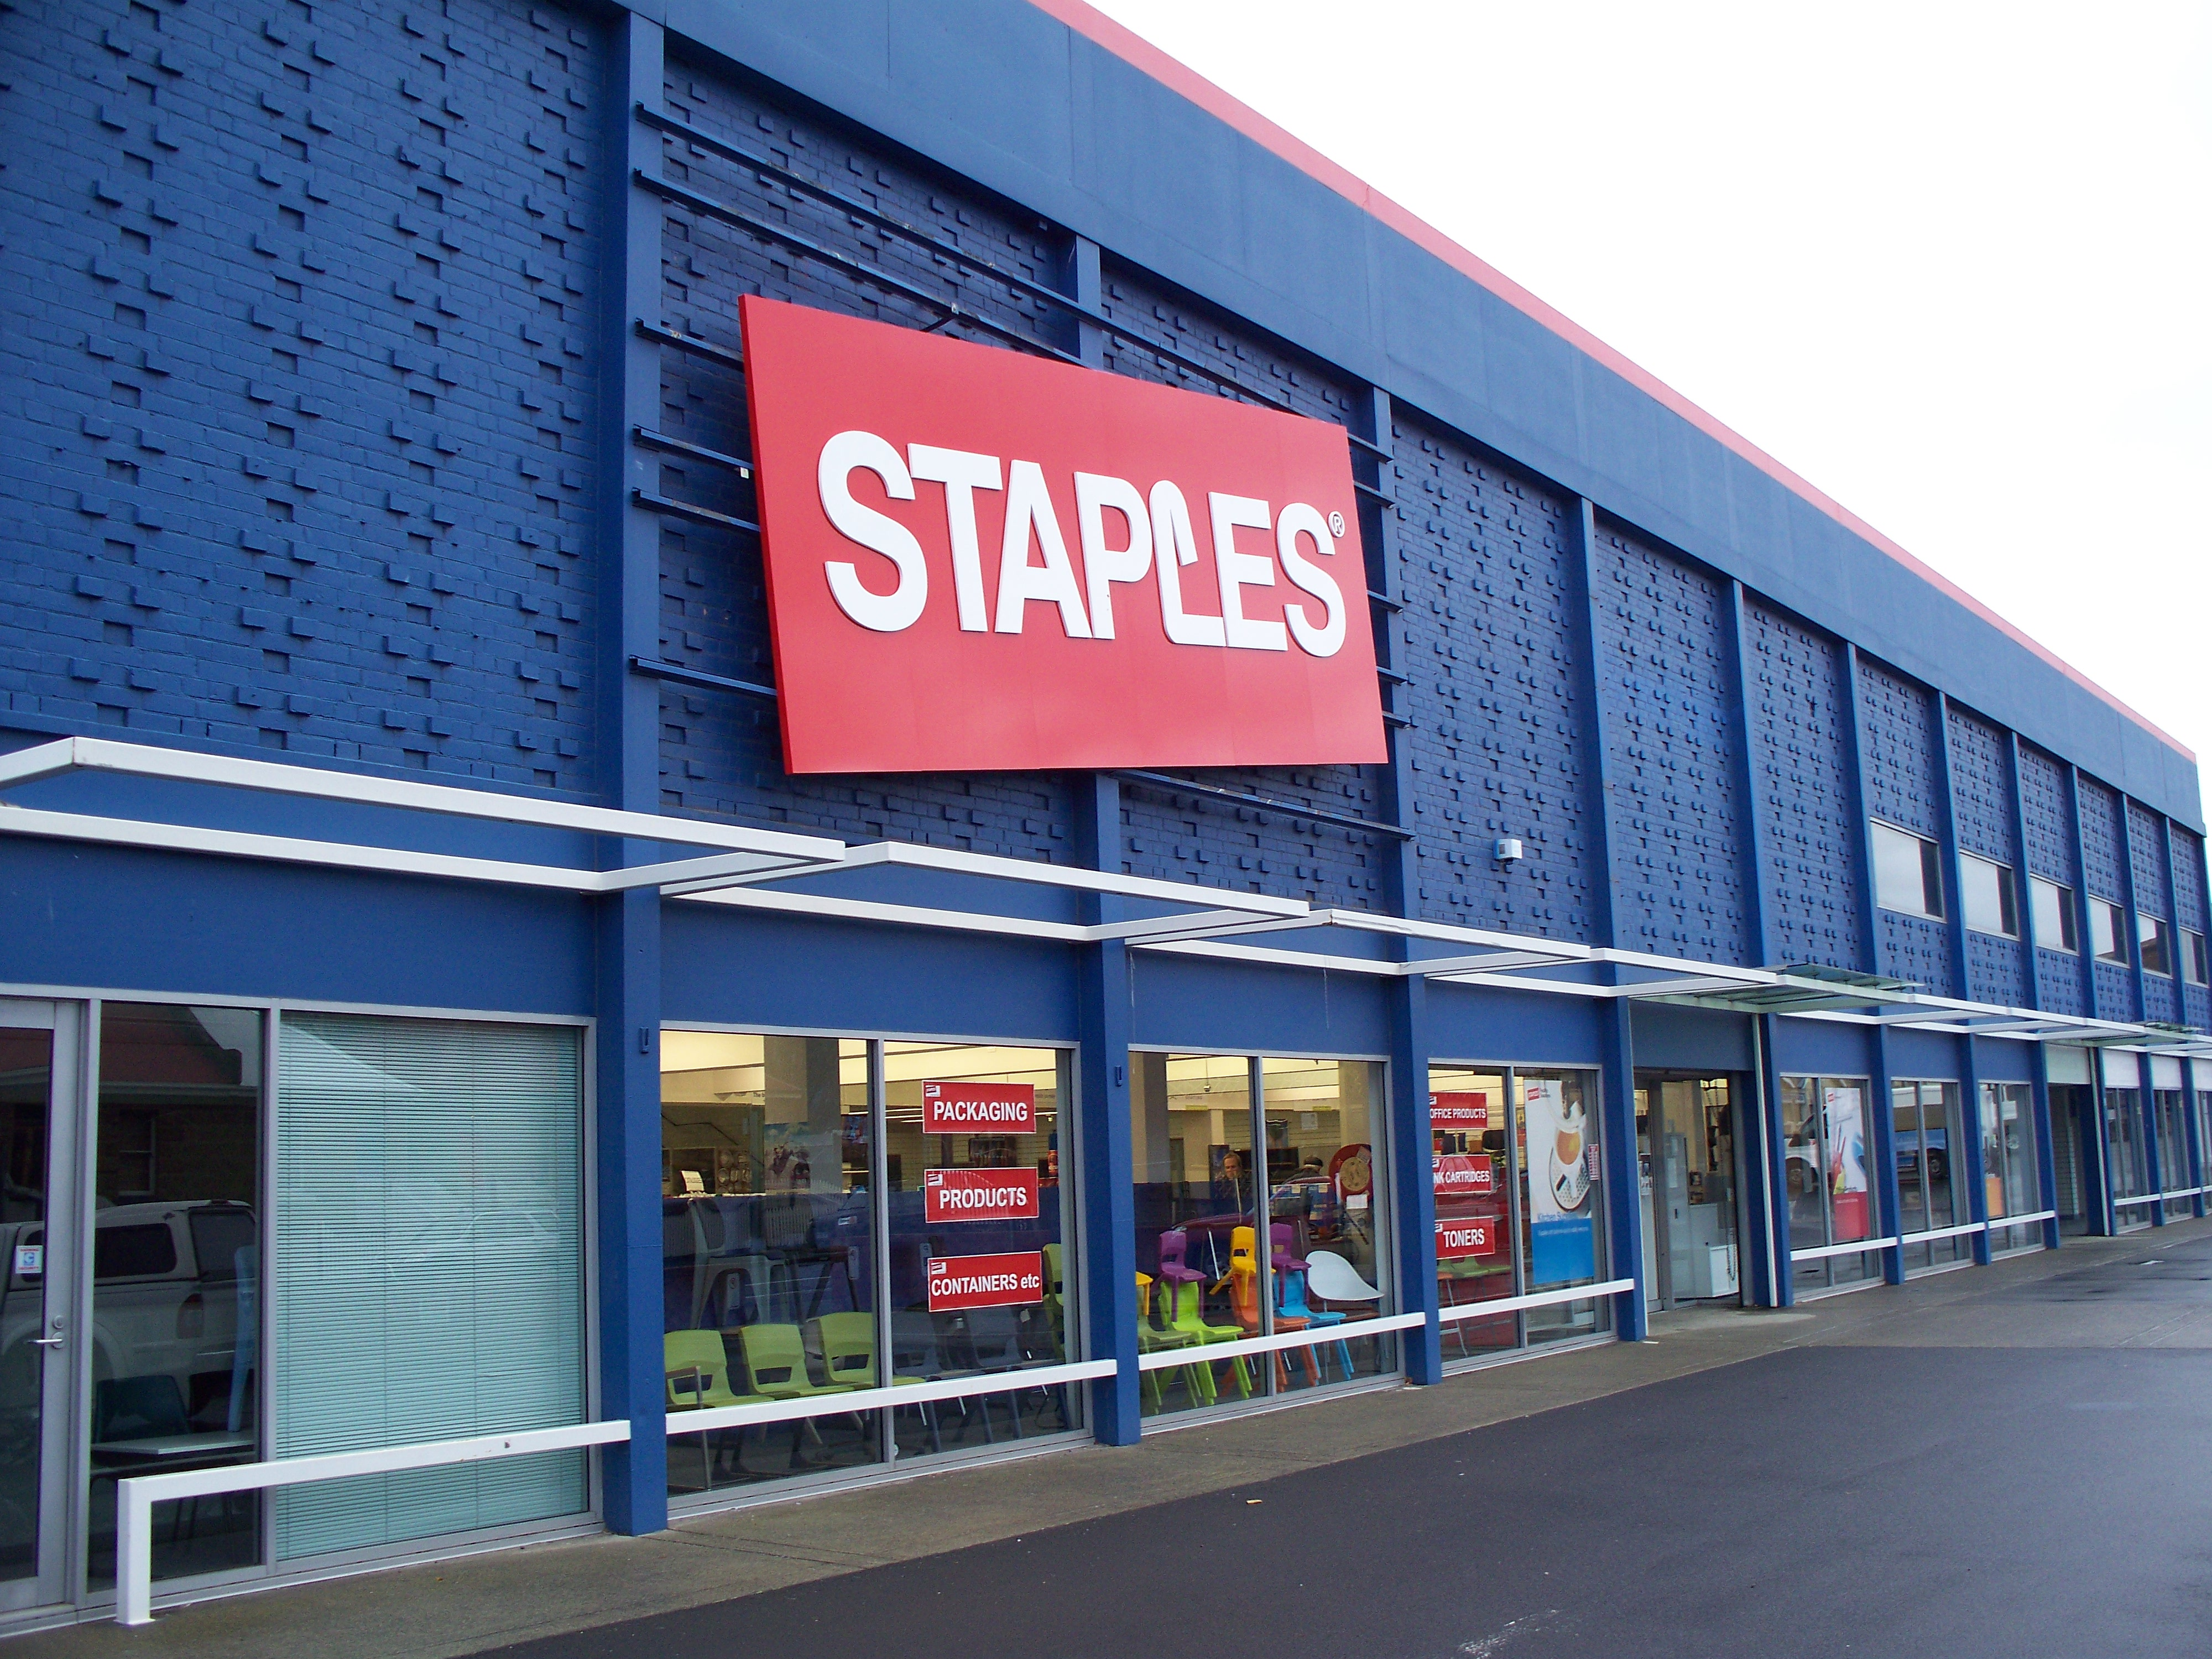 Staples in Talks to Sell its Stores to Office Depot